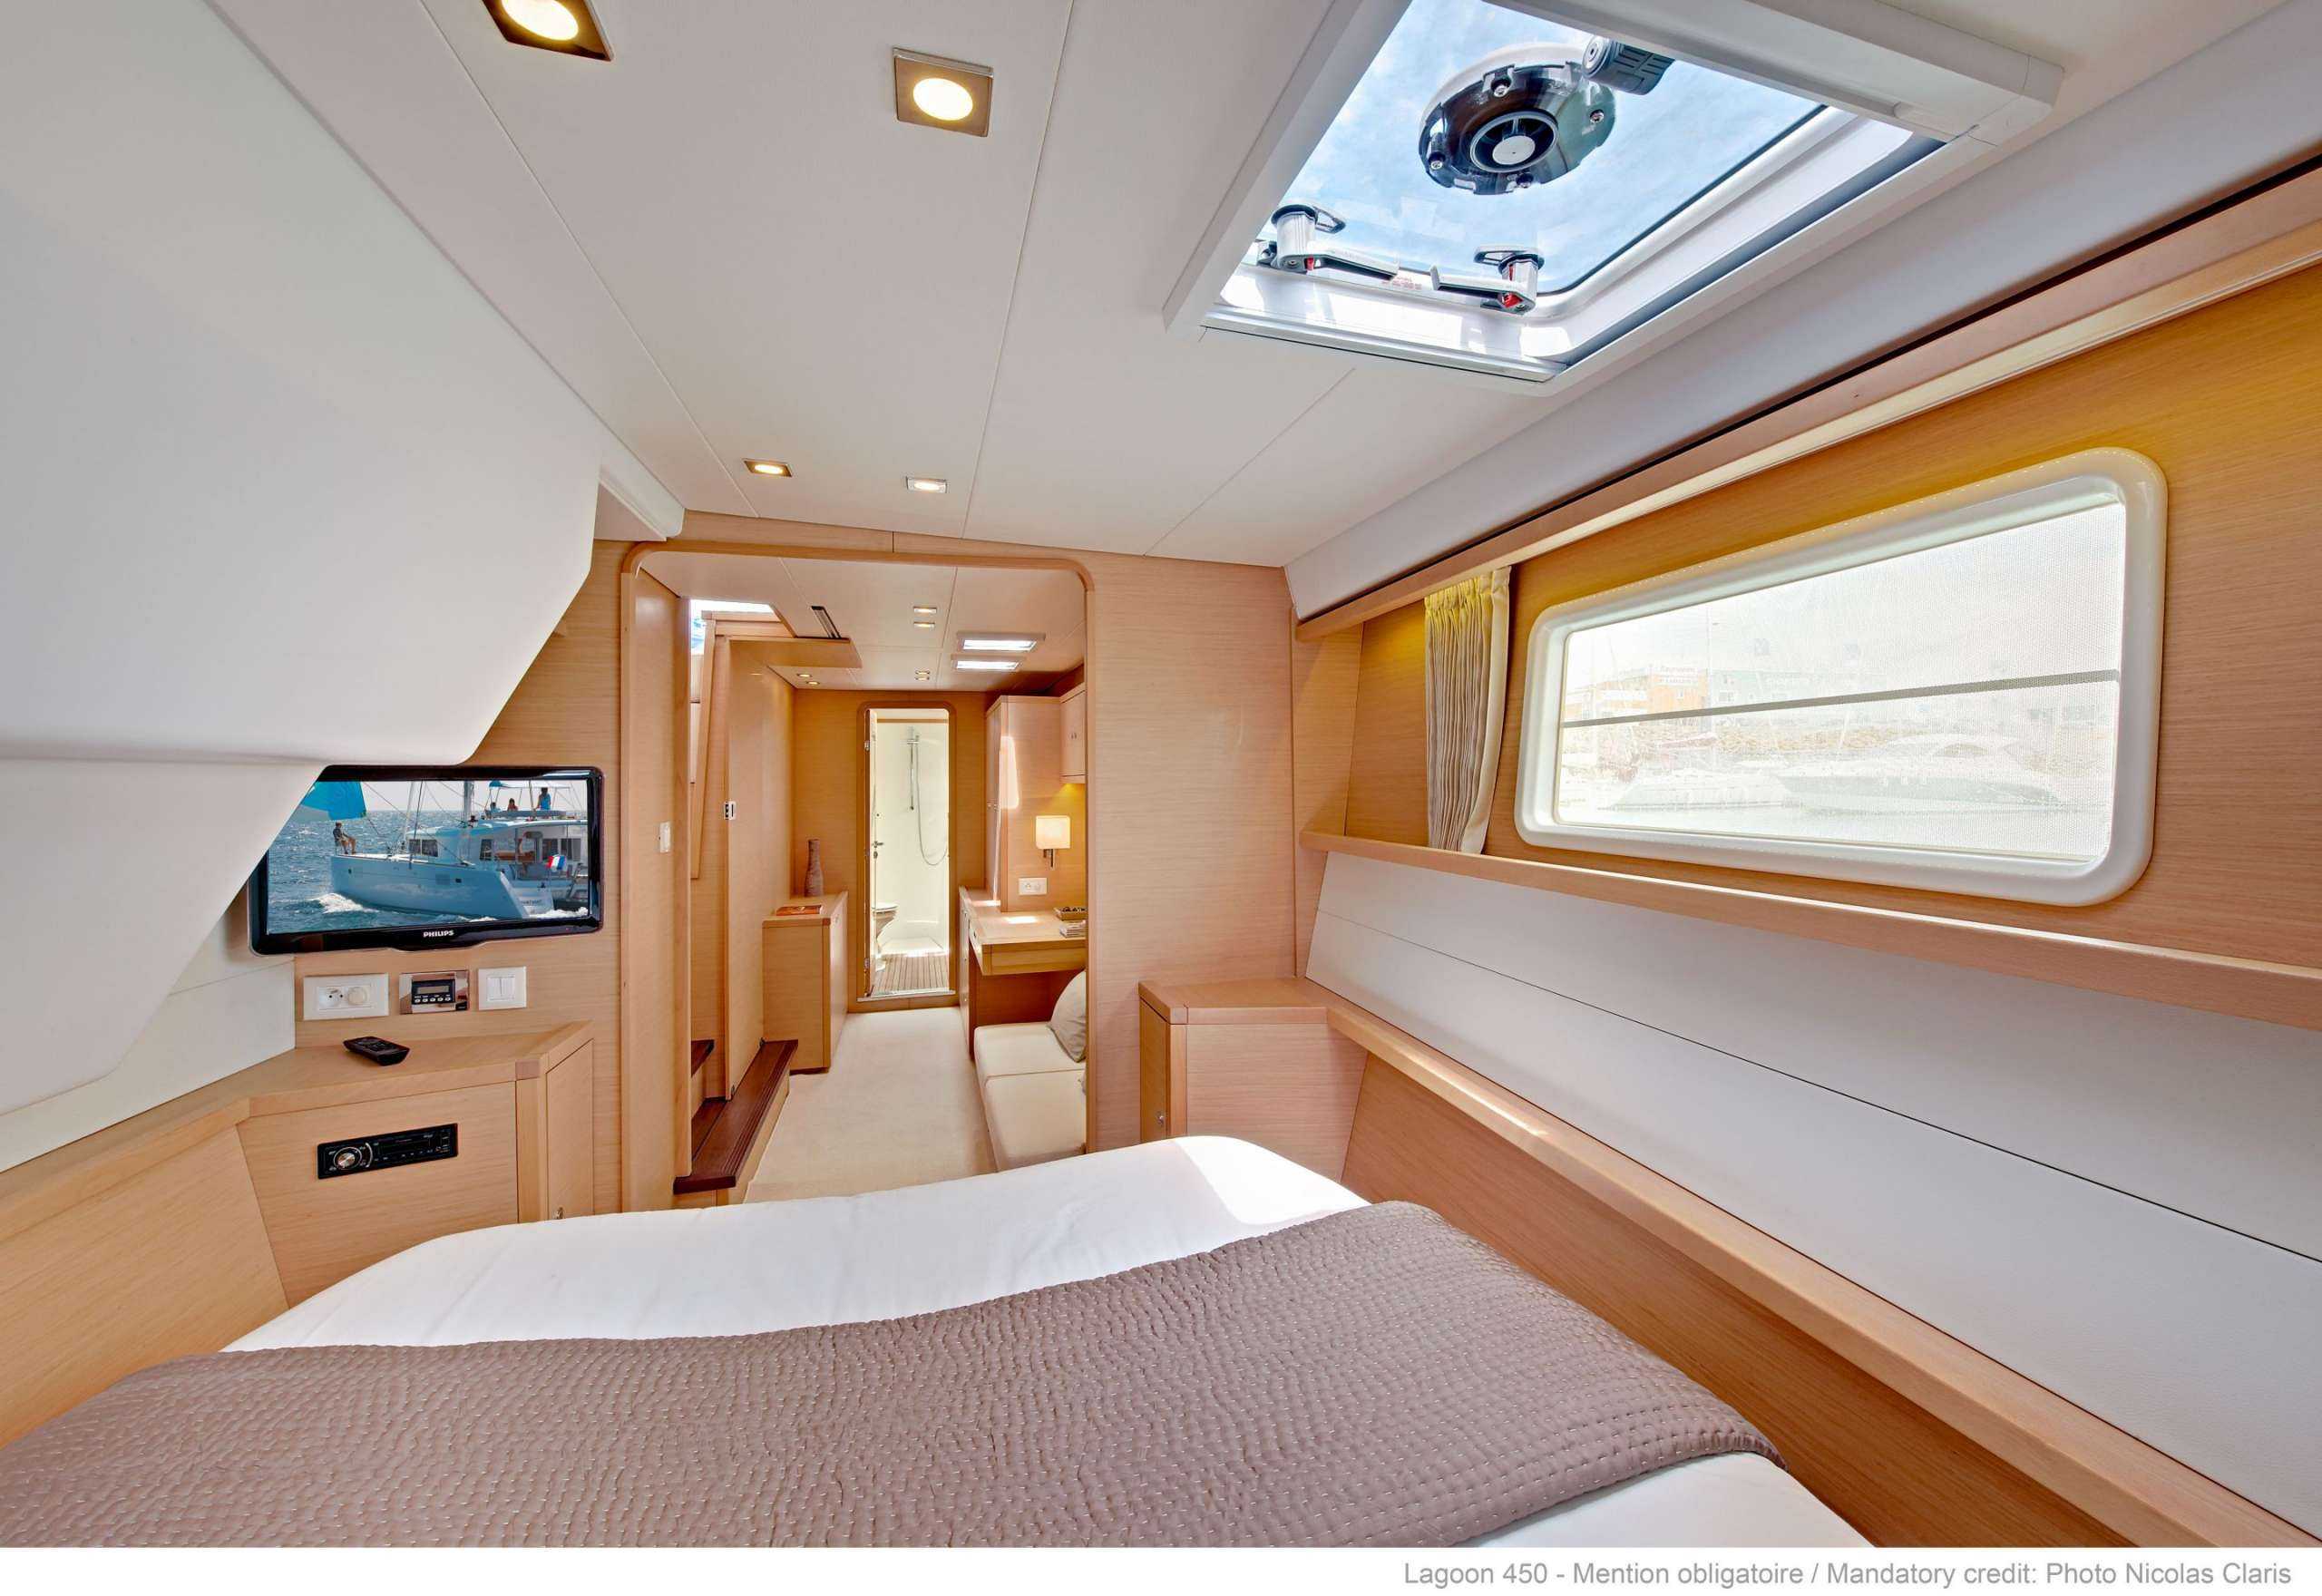 Lagoon 450F with the marvelous interior